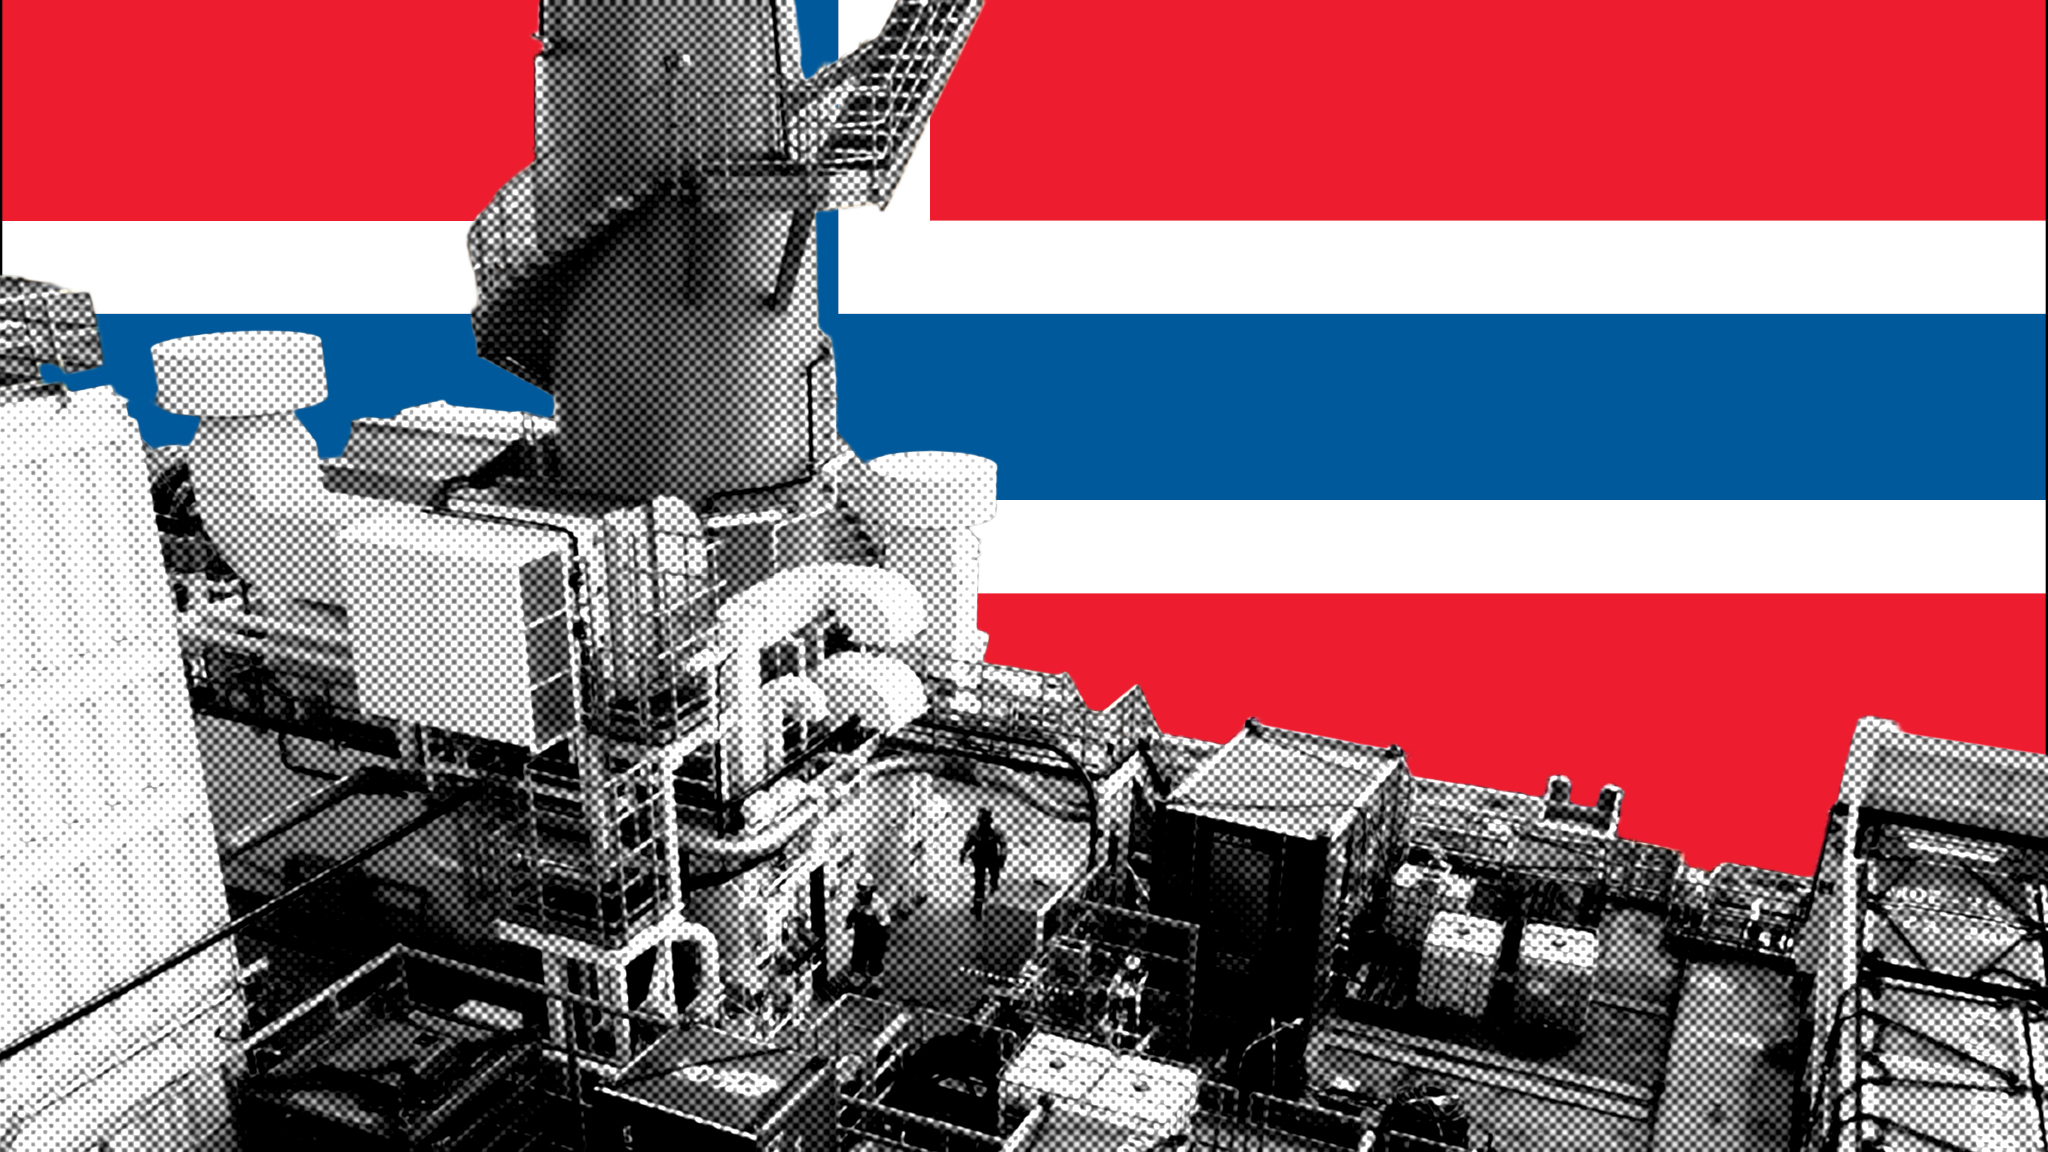 Norway's dilemma over an oil fund without oil